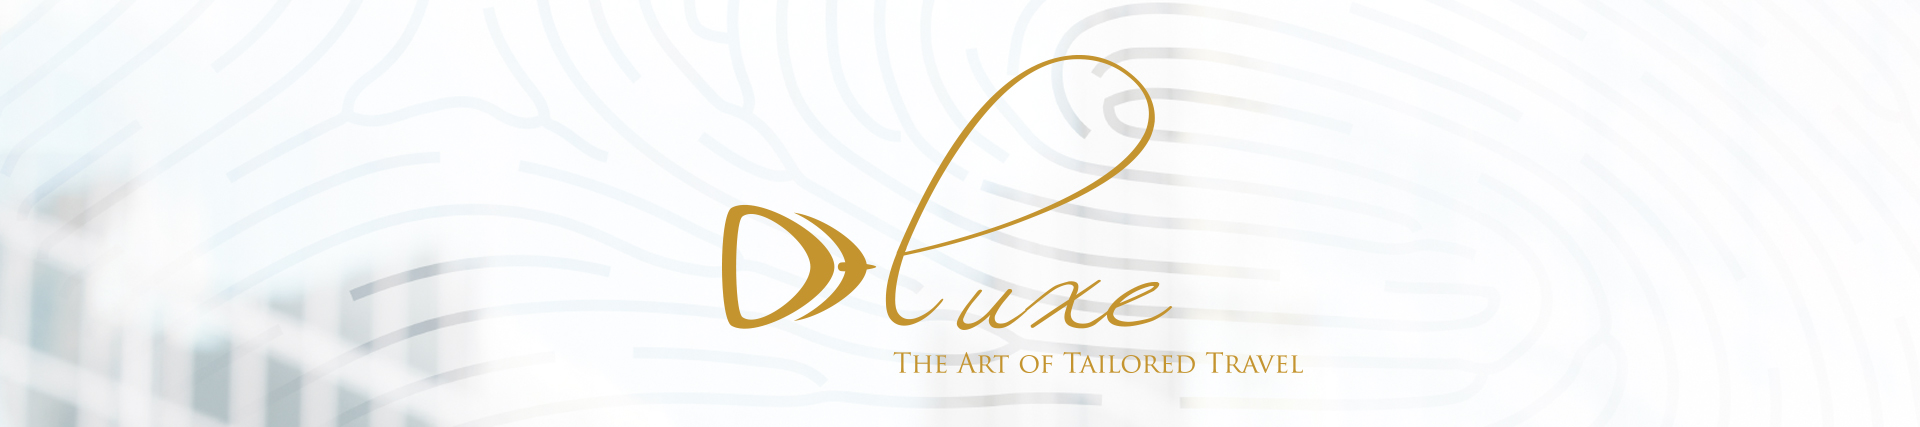 Direct Travel Unveils Luxury Division: Direct Travel Luxe